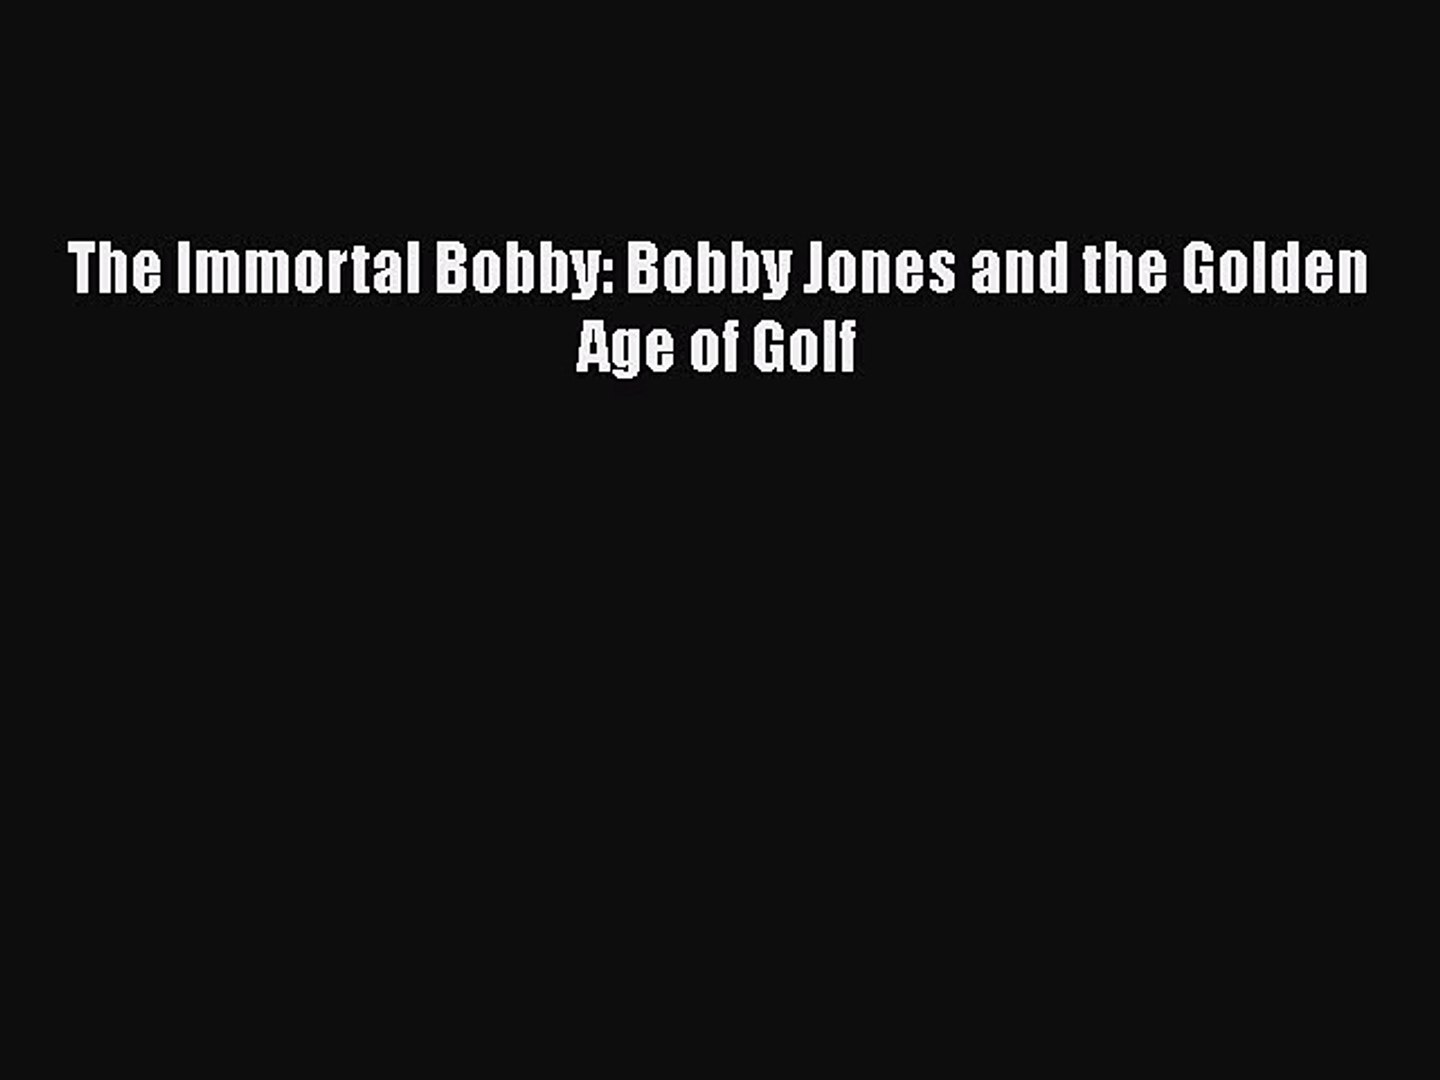 Download The Immortal Bobby: Bobby Jones and the Golden Age of Golf  EBook